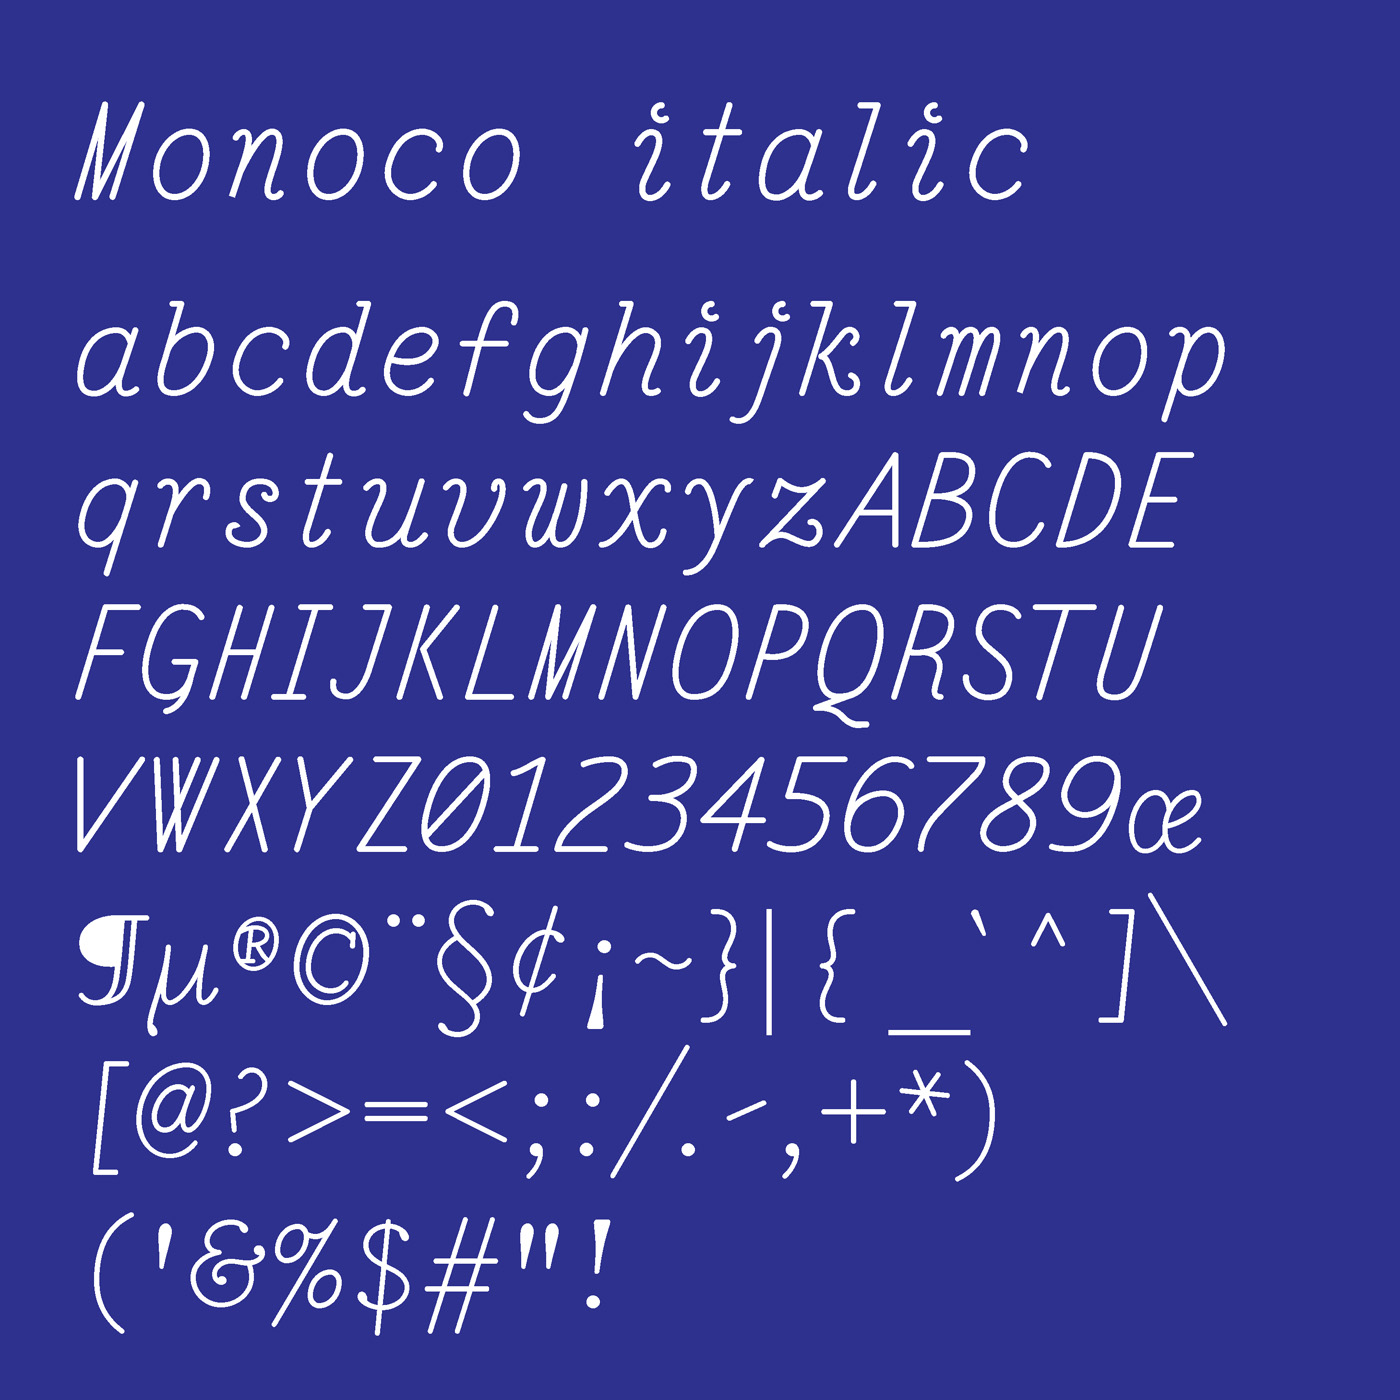 Monoco typeface designed by Thomas Bush